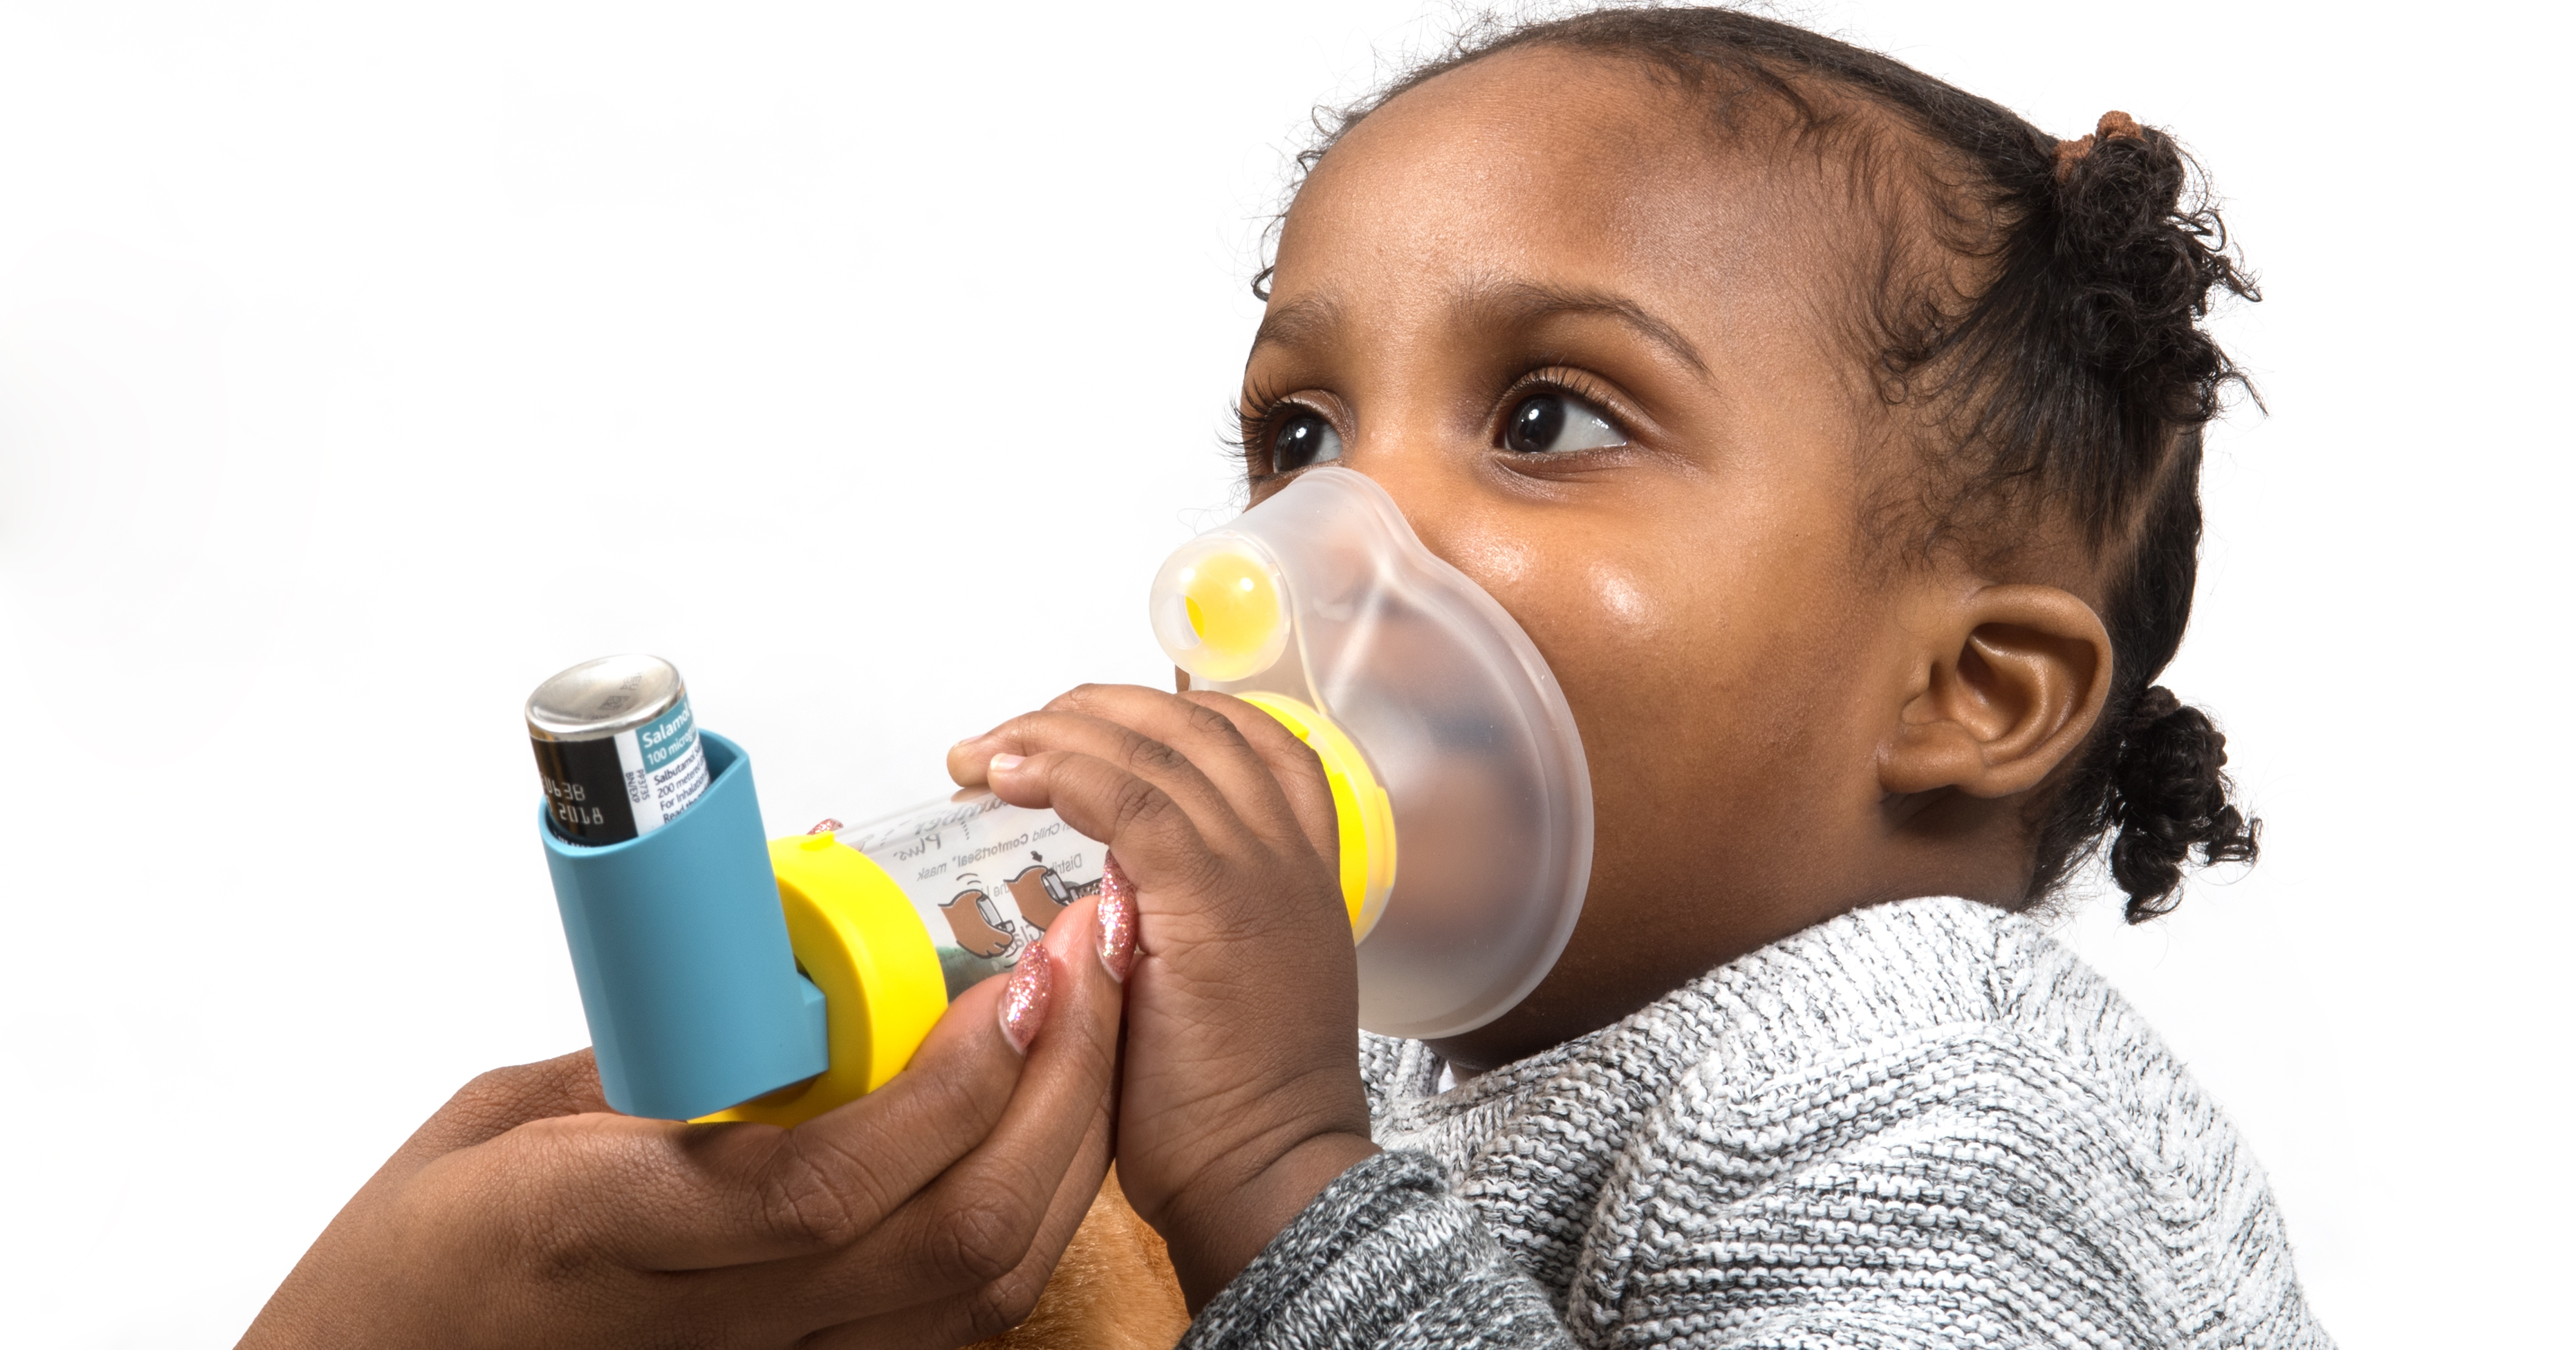 Children's community asthma service